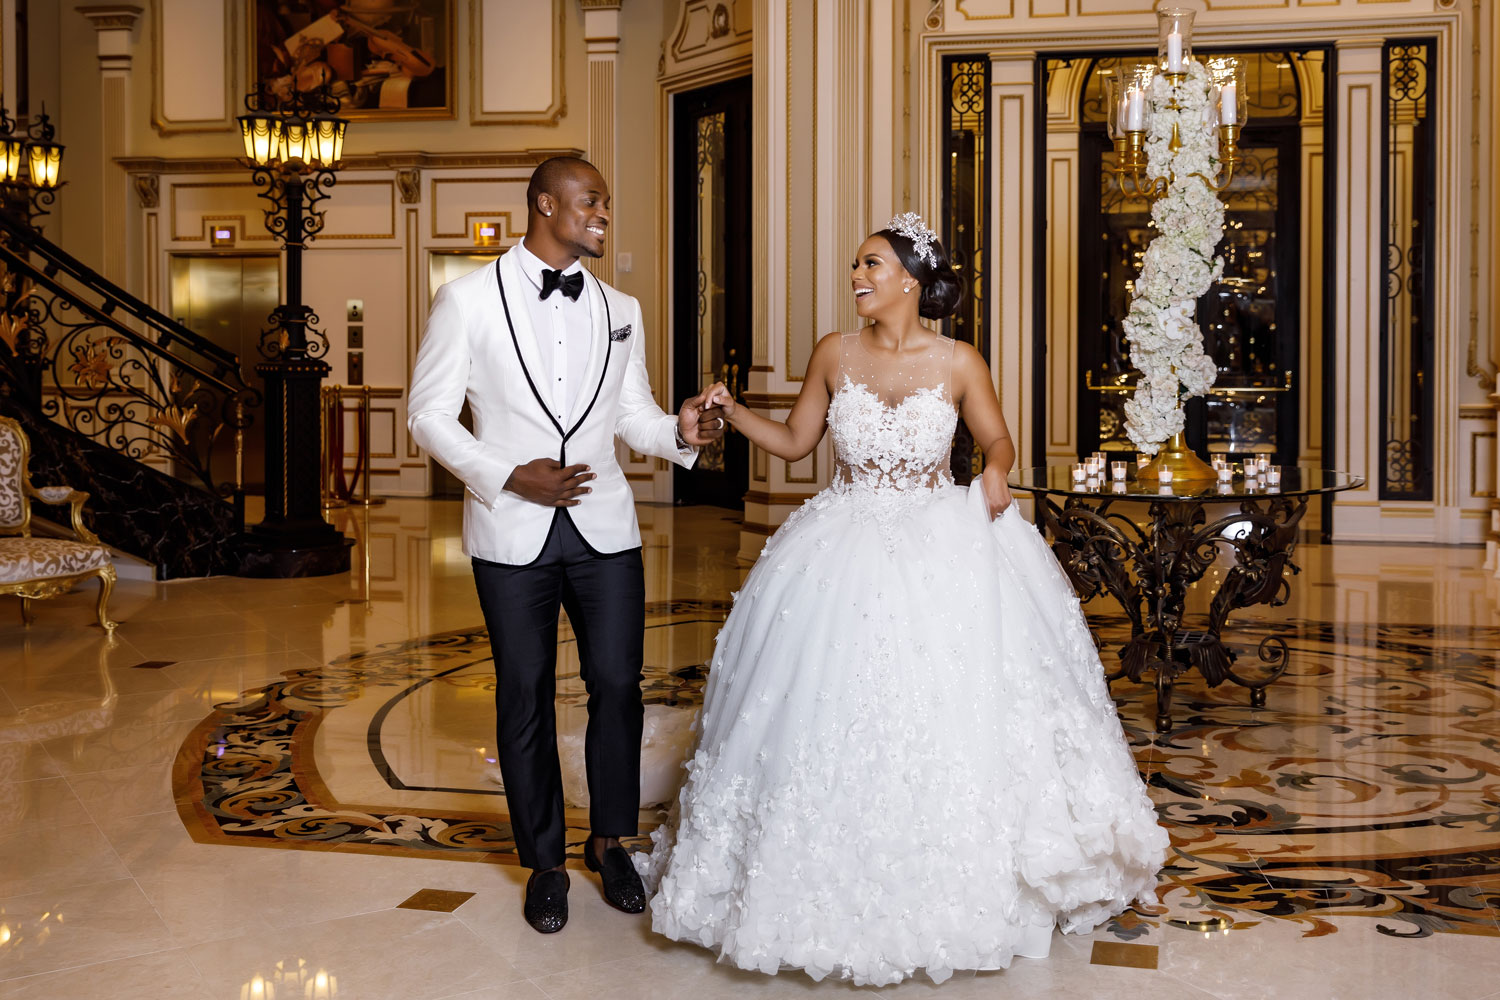 tahir whitehead nfl wedding at castle in new york